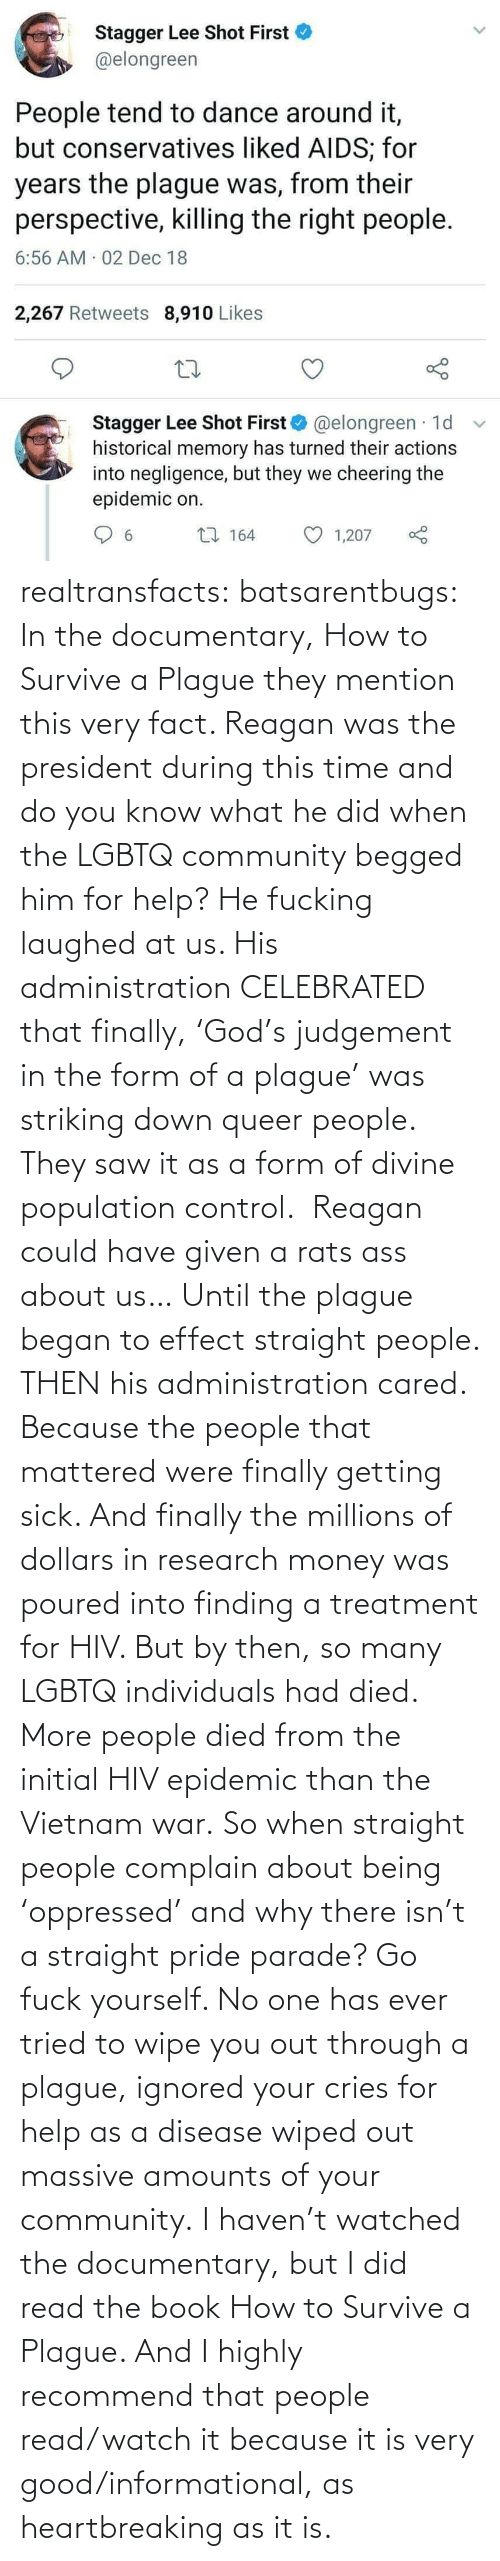 When The: Stagger Lee Shot First  @elongreen  People tend to dance around it,  but conservatives liked AIDS; for  years the plague was, from their  perspective, killing the right people.  6:56 AM 02 Dec 18  2,267 Retweets 8,910 Likes  Stagger Lee Shot First O @elongreen · 1d  historical memory has turned their actions  into negligence, but they we cheering the  epidemic on.  27 164  1,207  6. realtransfacts:  batsarentbugs:  In the documentary, How to Survive a Plague they mention this very fact. Reagan was the president during this time and do you know what he did when the LGBTQ community begged him for help? He fucking laughed at us. His administration CELEBRATED that finally, 'God's judgement in the form of a plague' was striking down queer people.  They saw it as a form of divine population control.  Reagan could have given a rats ass about us… Until the plague began to effect straight people. THEN his administration cared. Because the people that mattered were finally getting sick. And finally the millions of dollars in research money was poured into finding a treatment for HIV. But by then, so many LGBTQ individuals had died.  More people died from the initial HIV epidemic than the Vietnam war. So when straight people complain about being 'oppressed' and why there isn't a straight pride parade? Go fuck yourself. No one has ever tried to wipe you out through a plague, ignored your cries for help as a disease wiped out massive amounts of your community.  I haven't watched the documentary, but I did read the book  How to Survive a Plague. And I highly recommend that people read/watch it because it is very good/informational, as heartbreaking as it is.